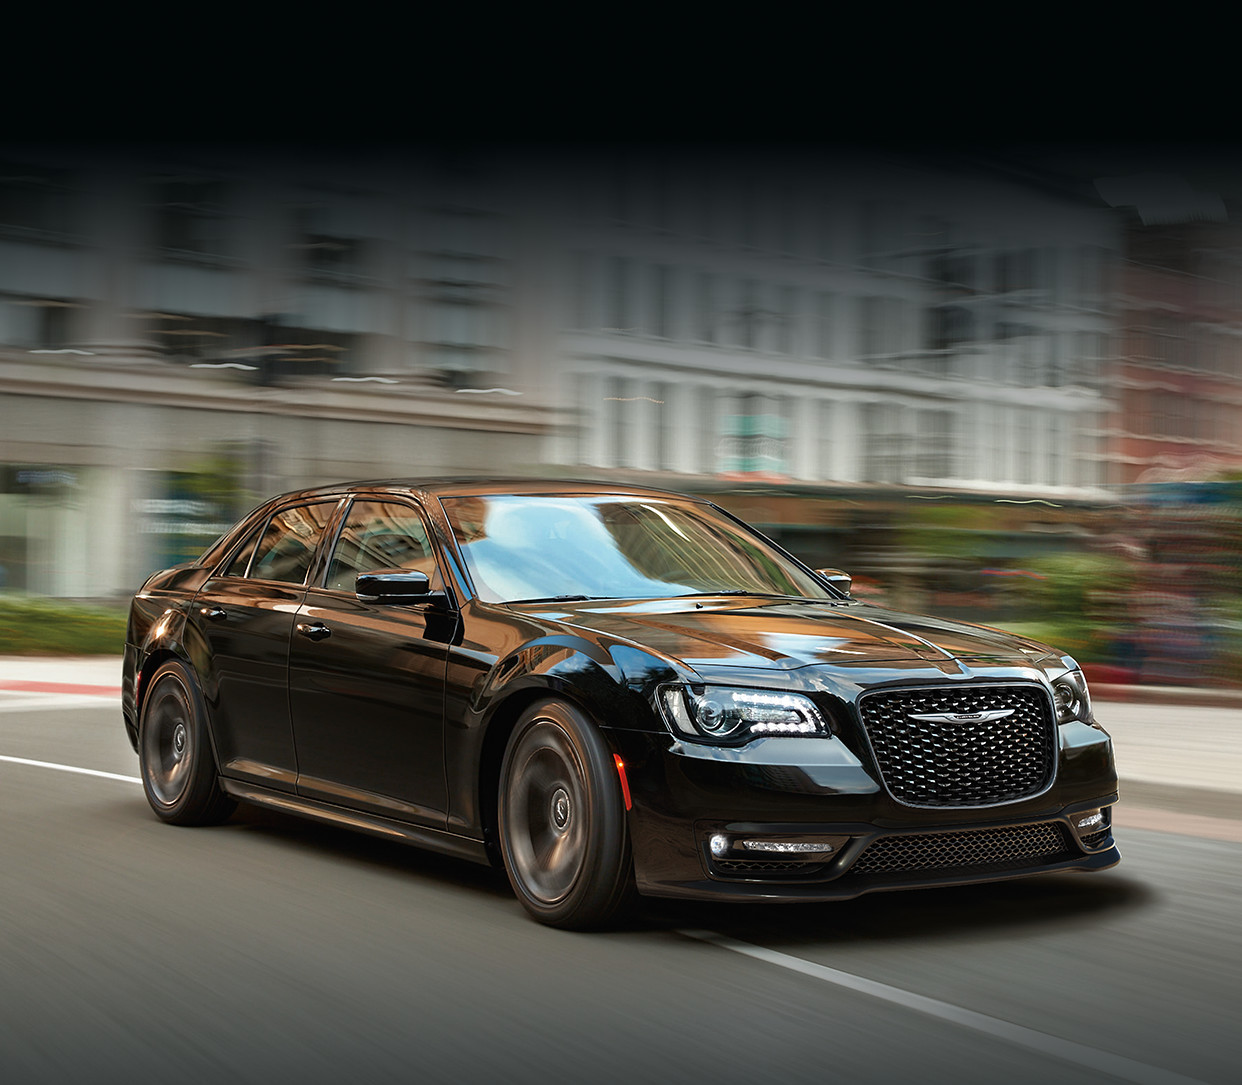 2019 Chrysler 300 driving down city street